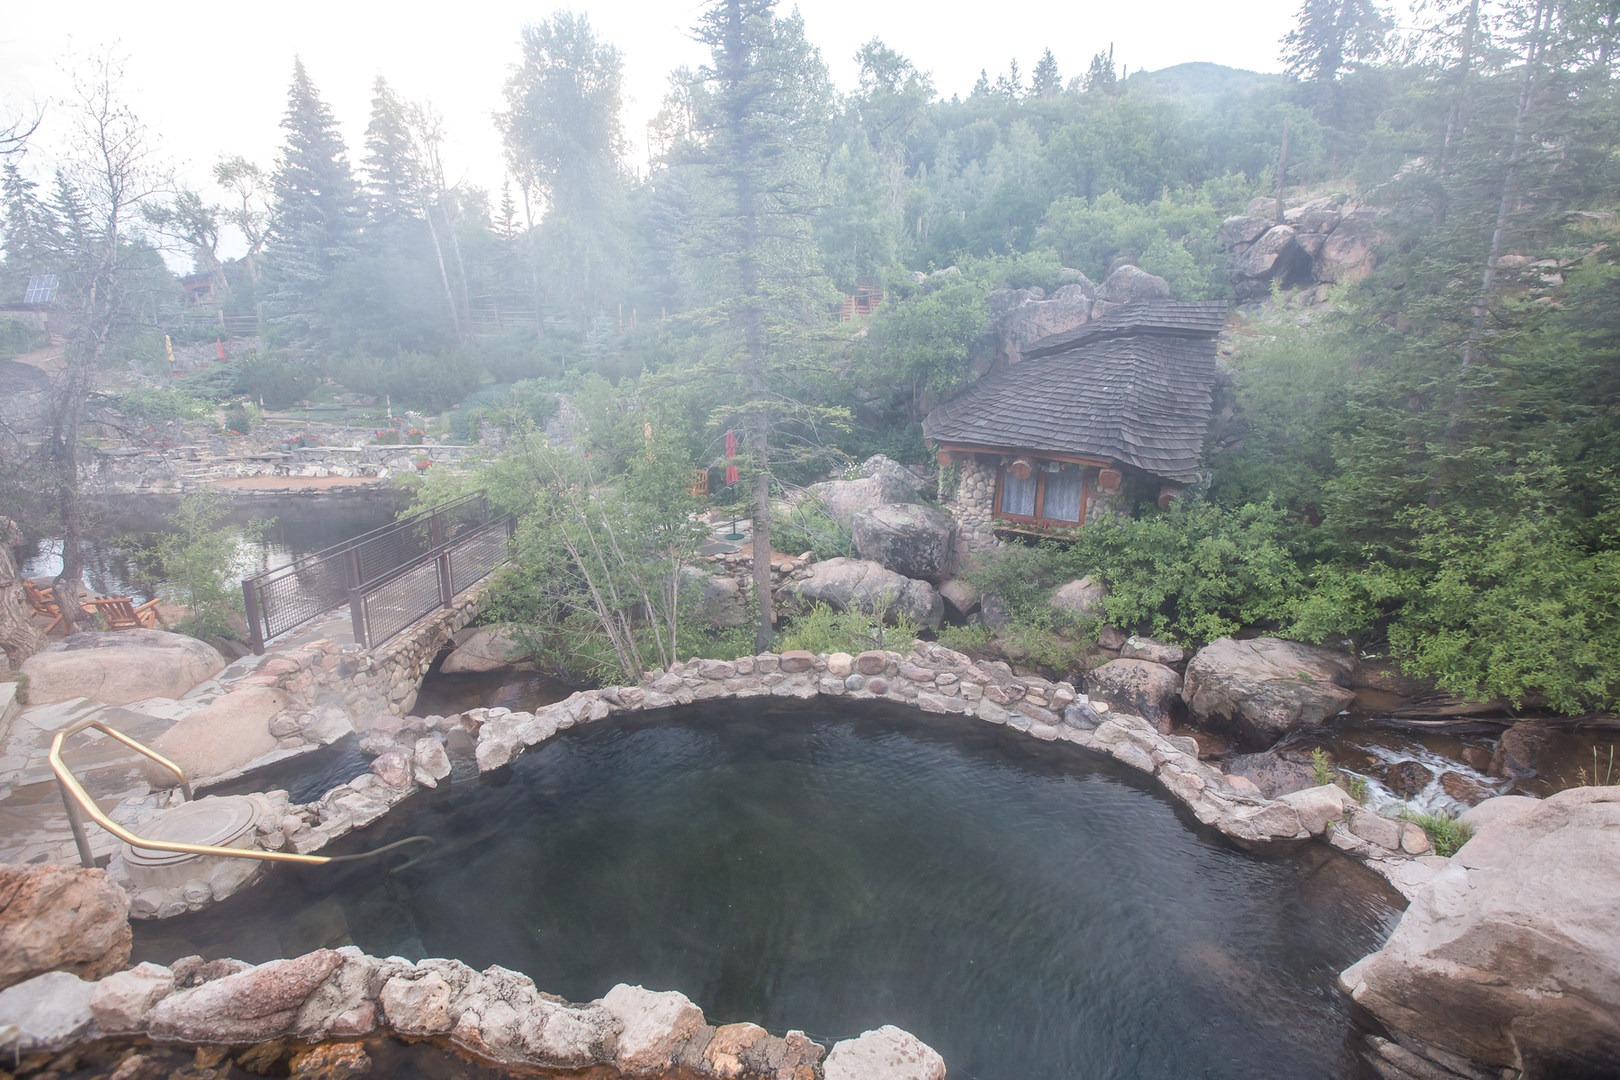 Hot Springs Geysers And Other Geothermal Activity